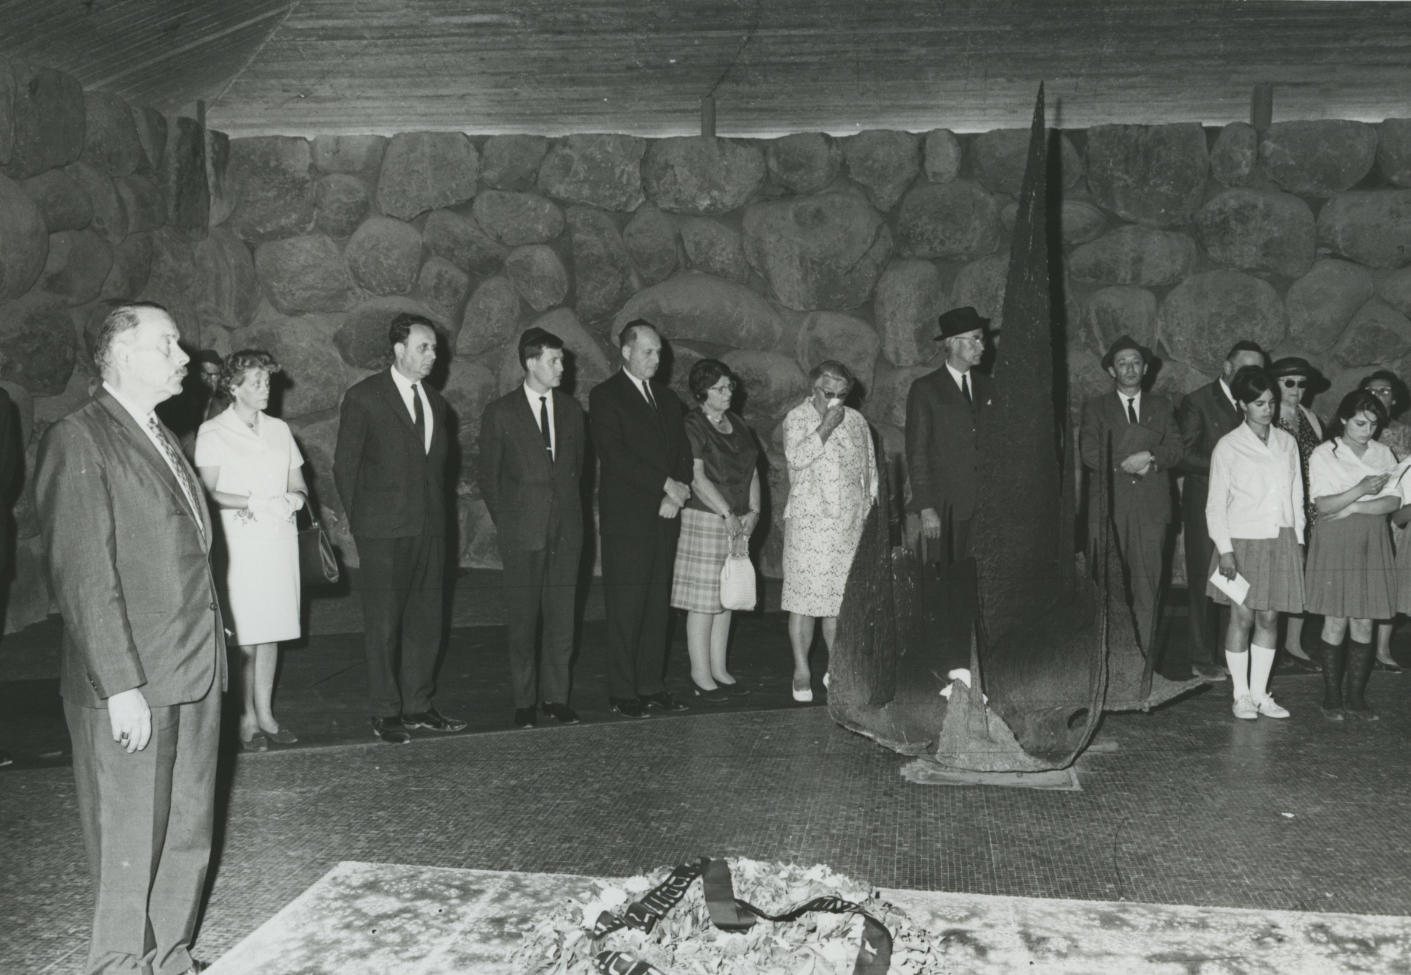 Ceremony in Honor of Wijsmuller Gertud in the Hall of Remembrance. Yad Vashem, 13.04.1967